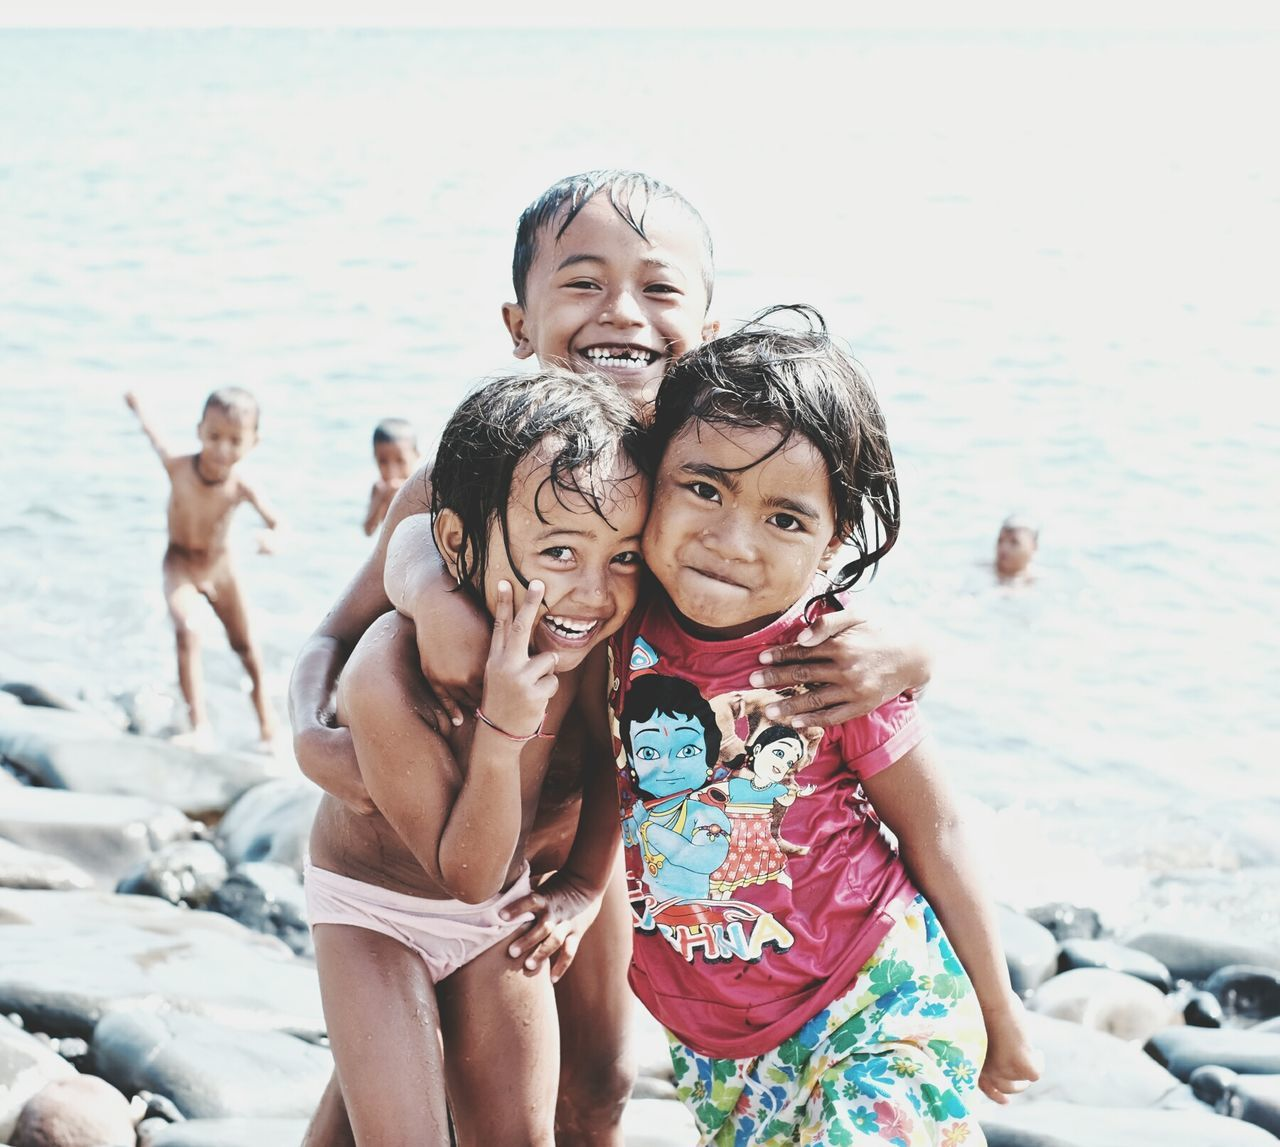 Children of the Sea - Children from a small fishing village on the far north coast of Bali, Indonesia. People Of The Oceans Travel Photography Travel Destinations Children Playing EyeEm Travel Photography